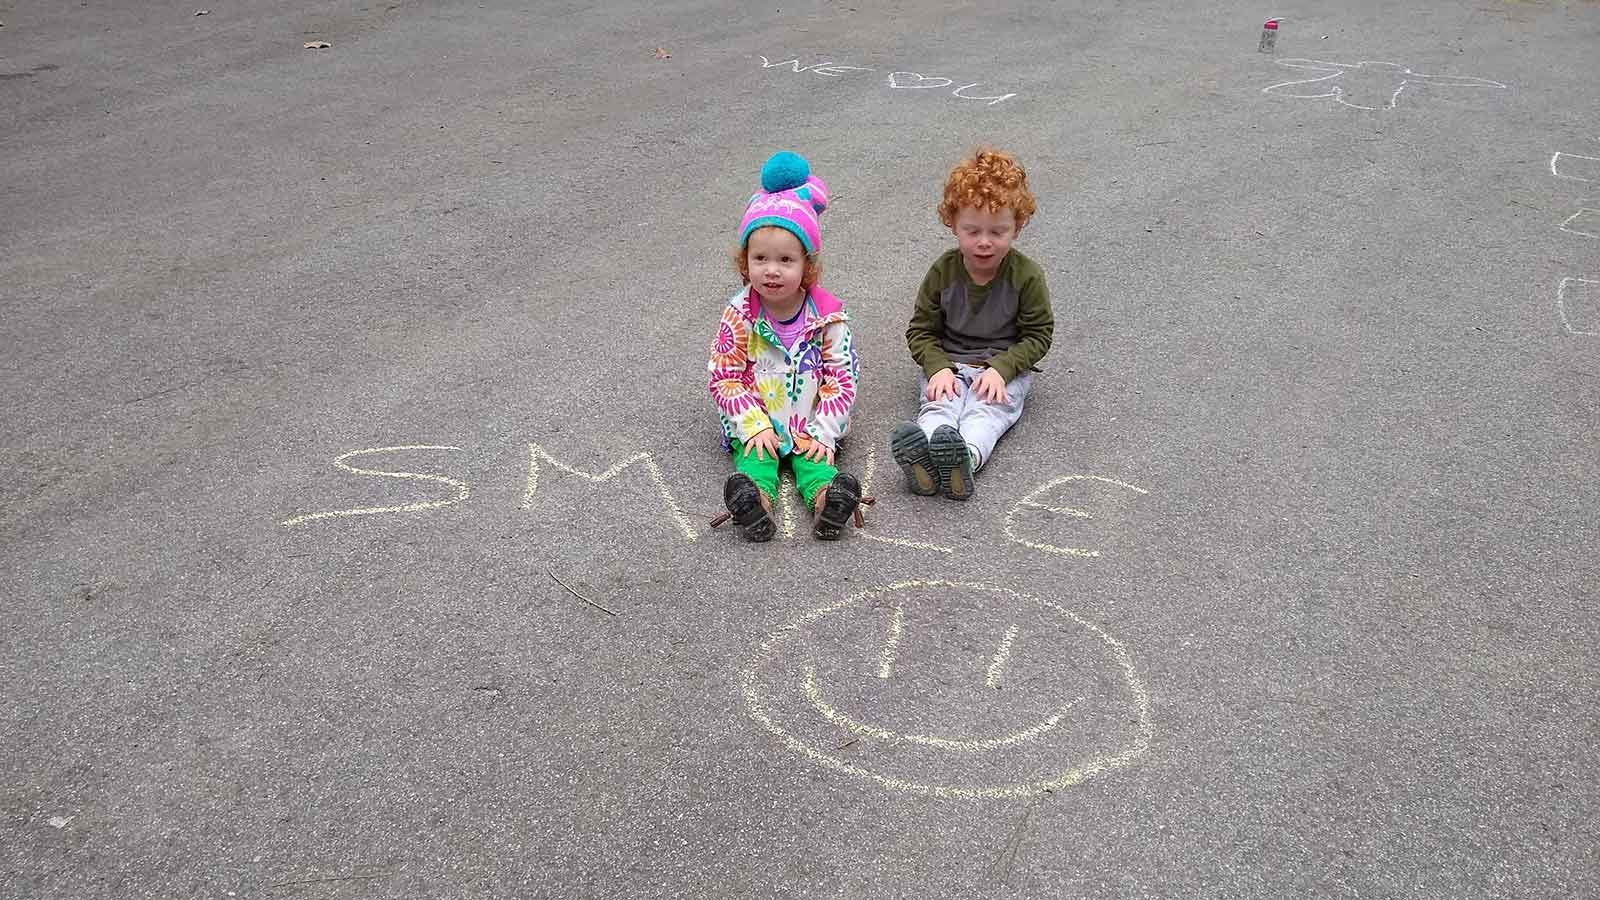 A little girl and boy sitting on the pavement next to some chalk drawings.